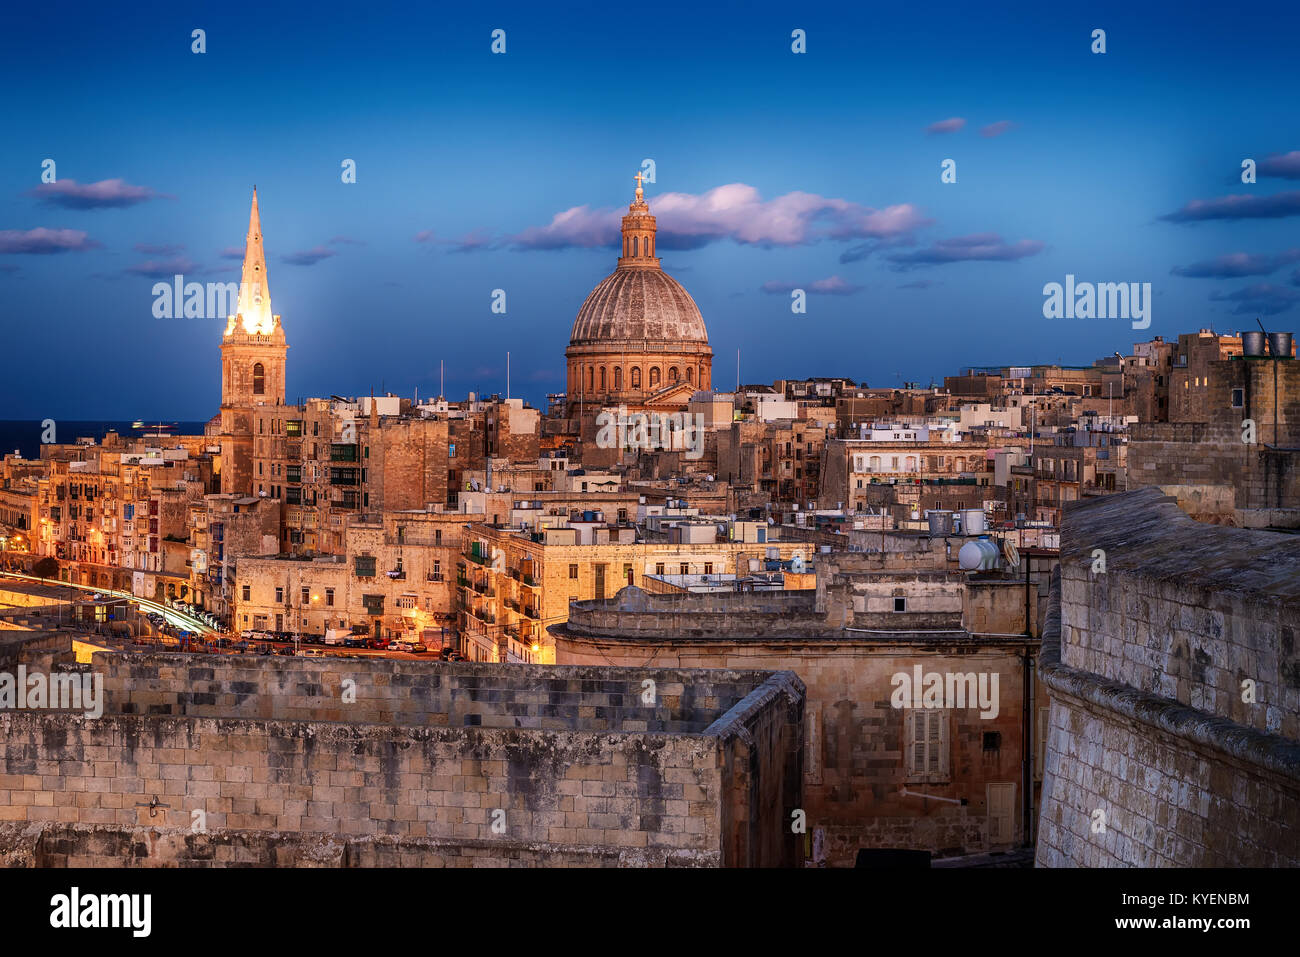 Valletta, Malta: aerial view from city walls at sunset. The cathedral - Stock Image